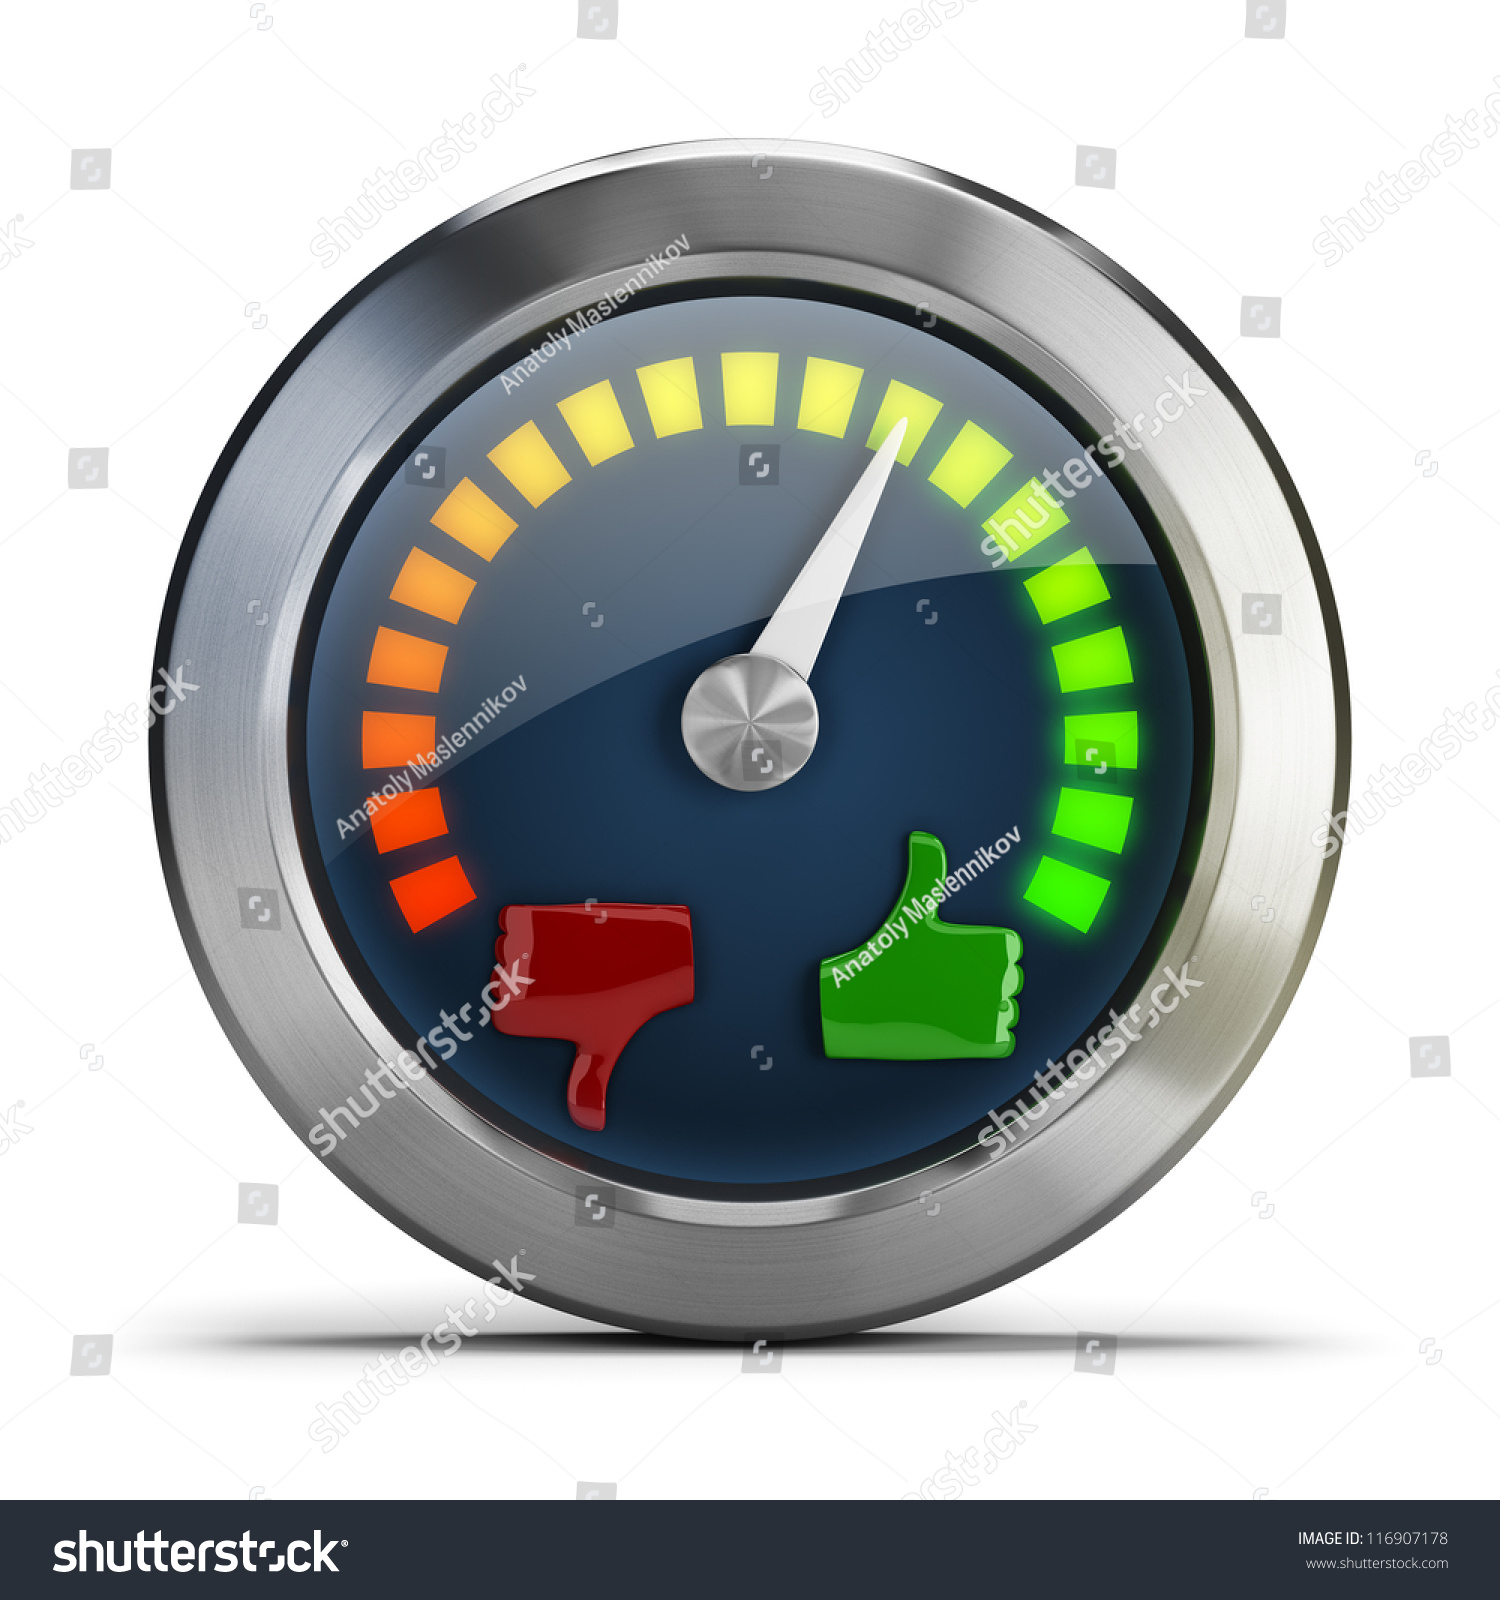 Mood Meter 3d Image Isolated White Stock Illustration ...